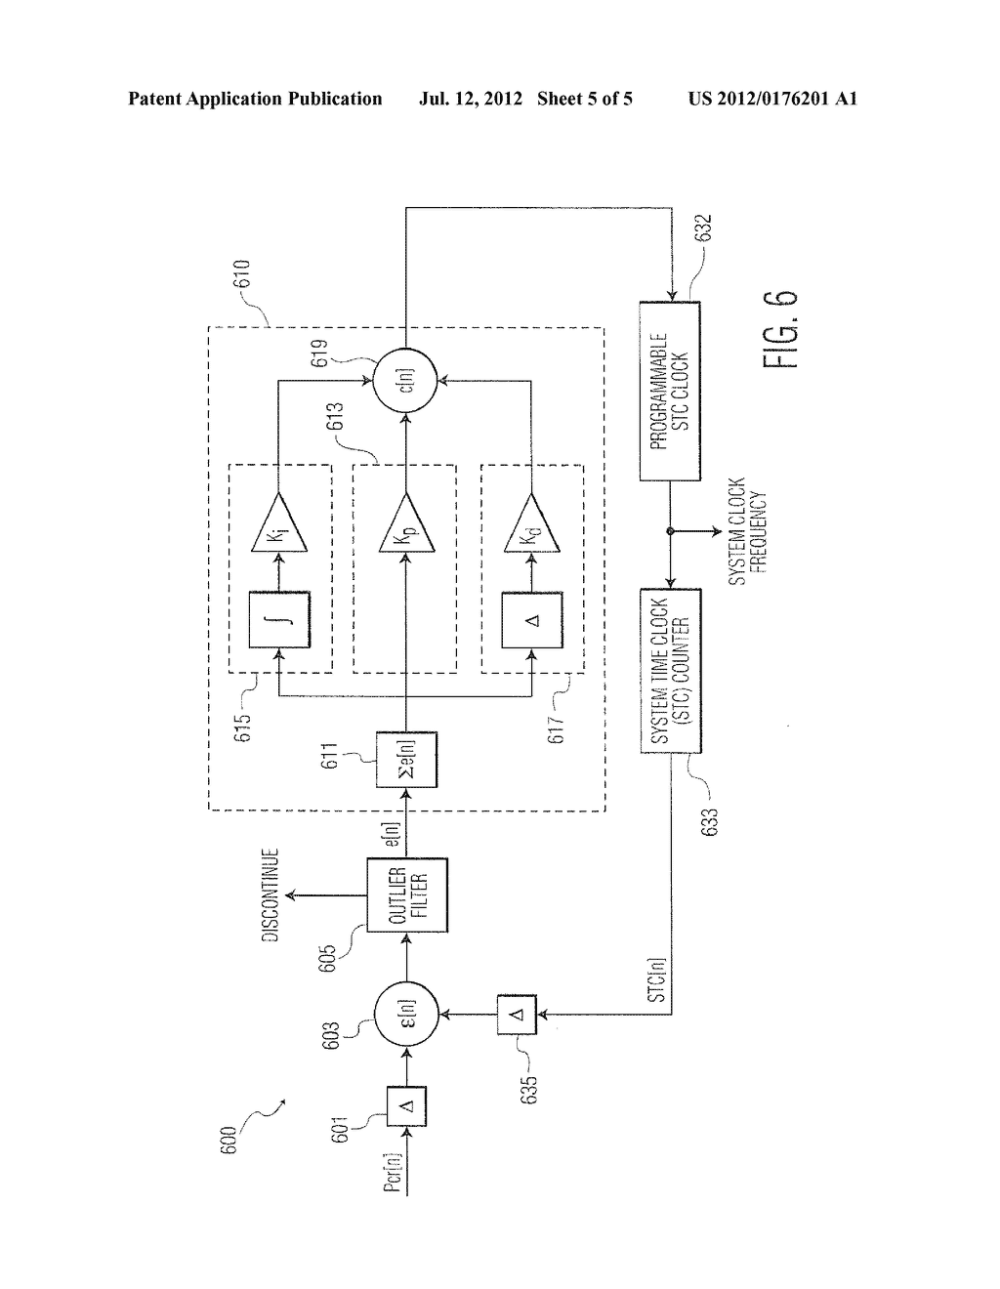 medium resolution of pid control for transmitter receiver synchronization diagram schematic and image 06